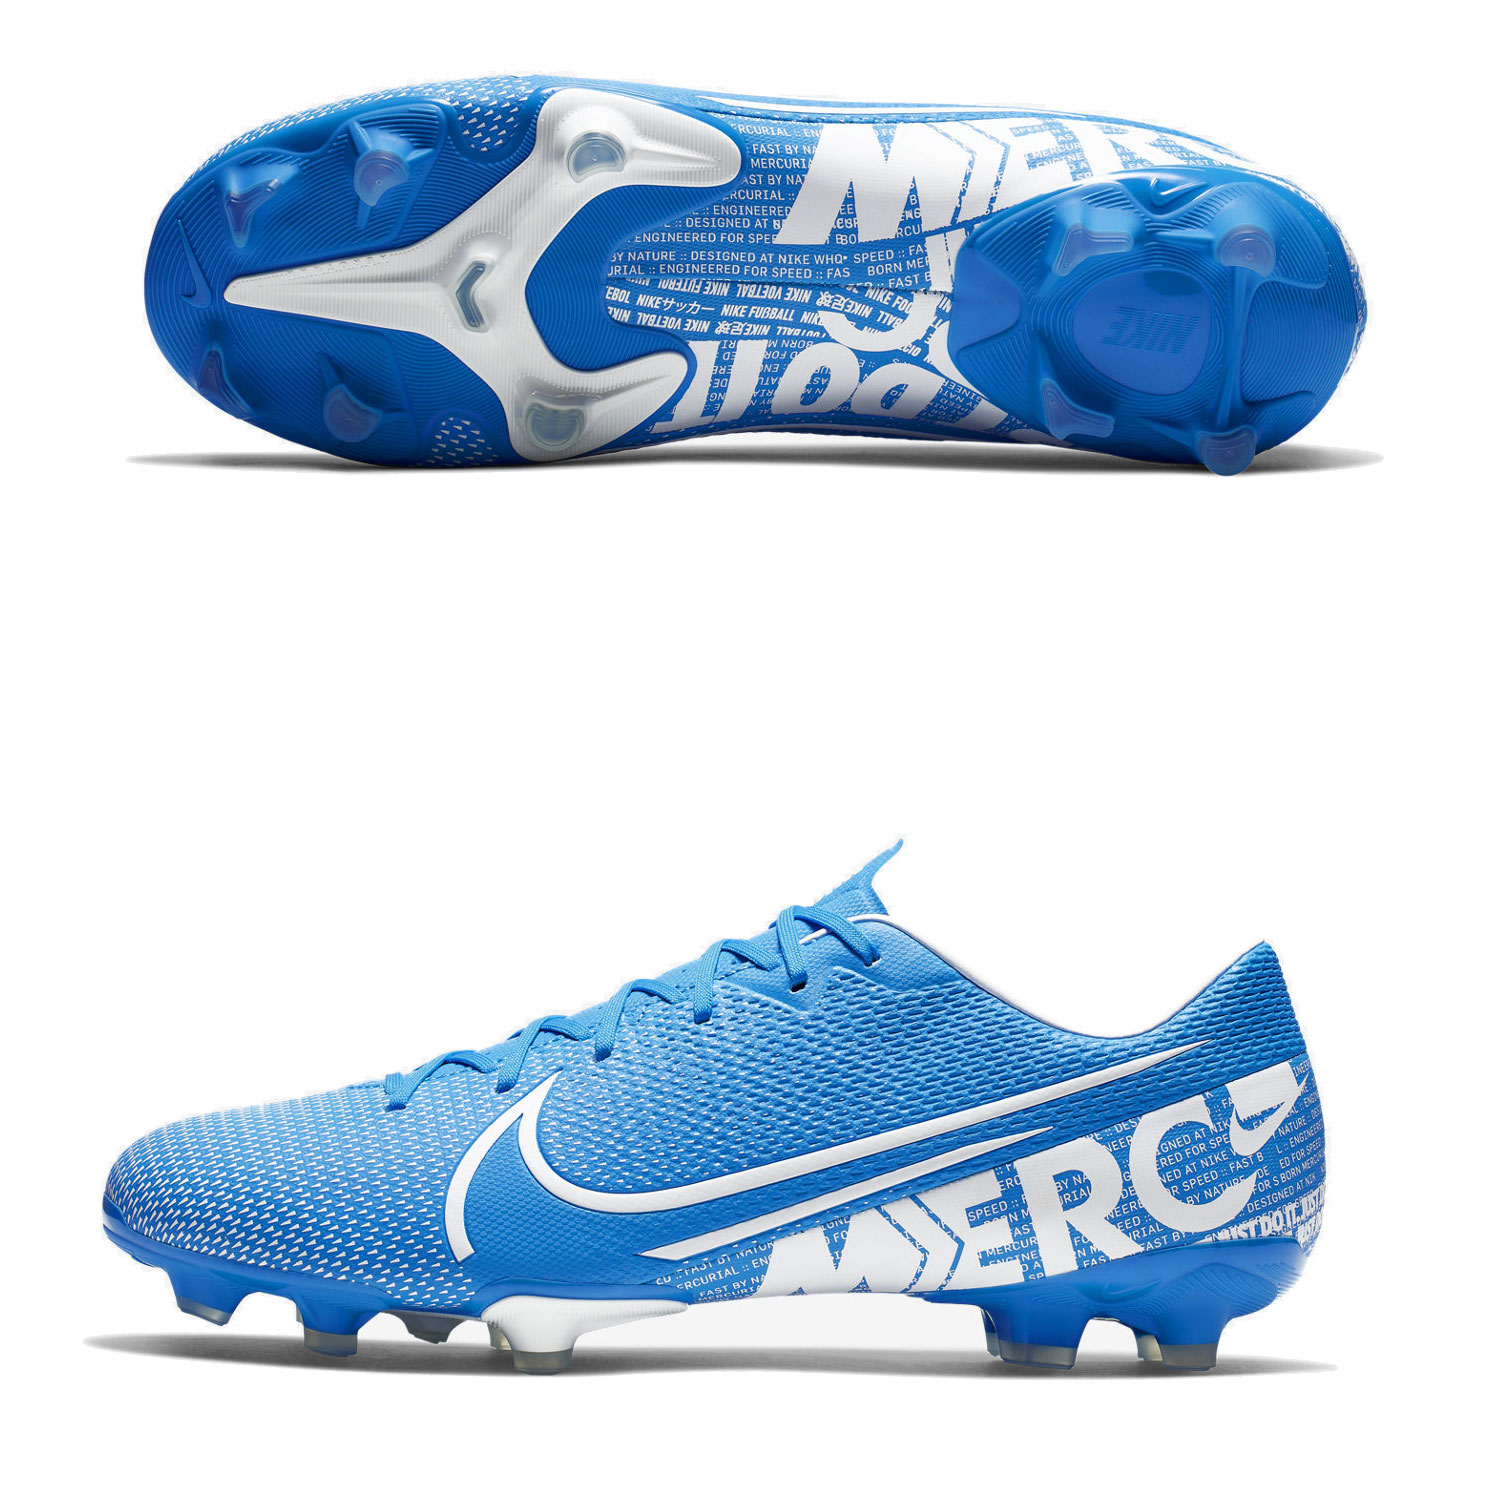 NIKE VAPOR XIII ACADEMY FG/MG AT5269-414